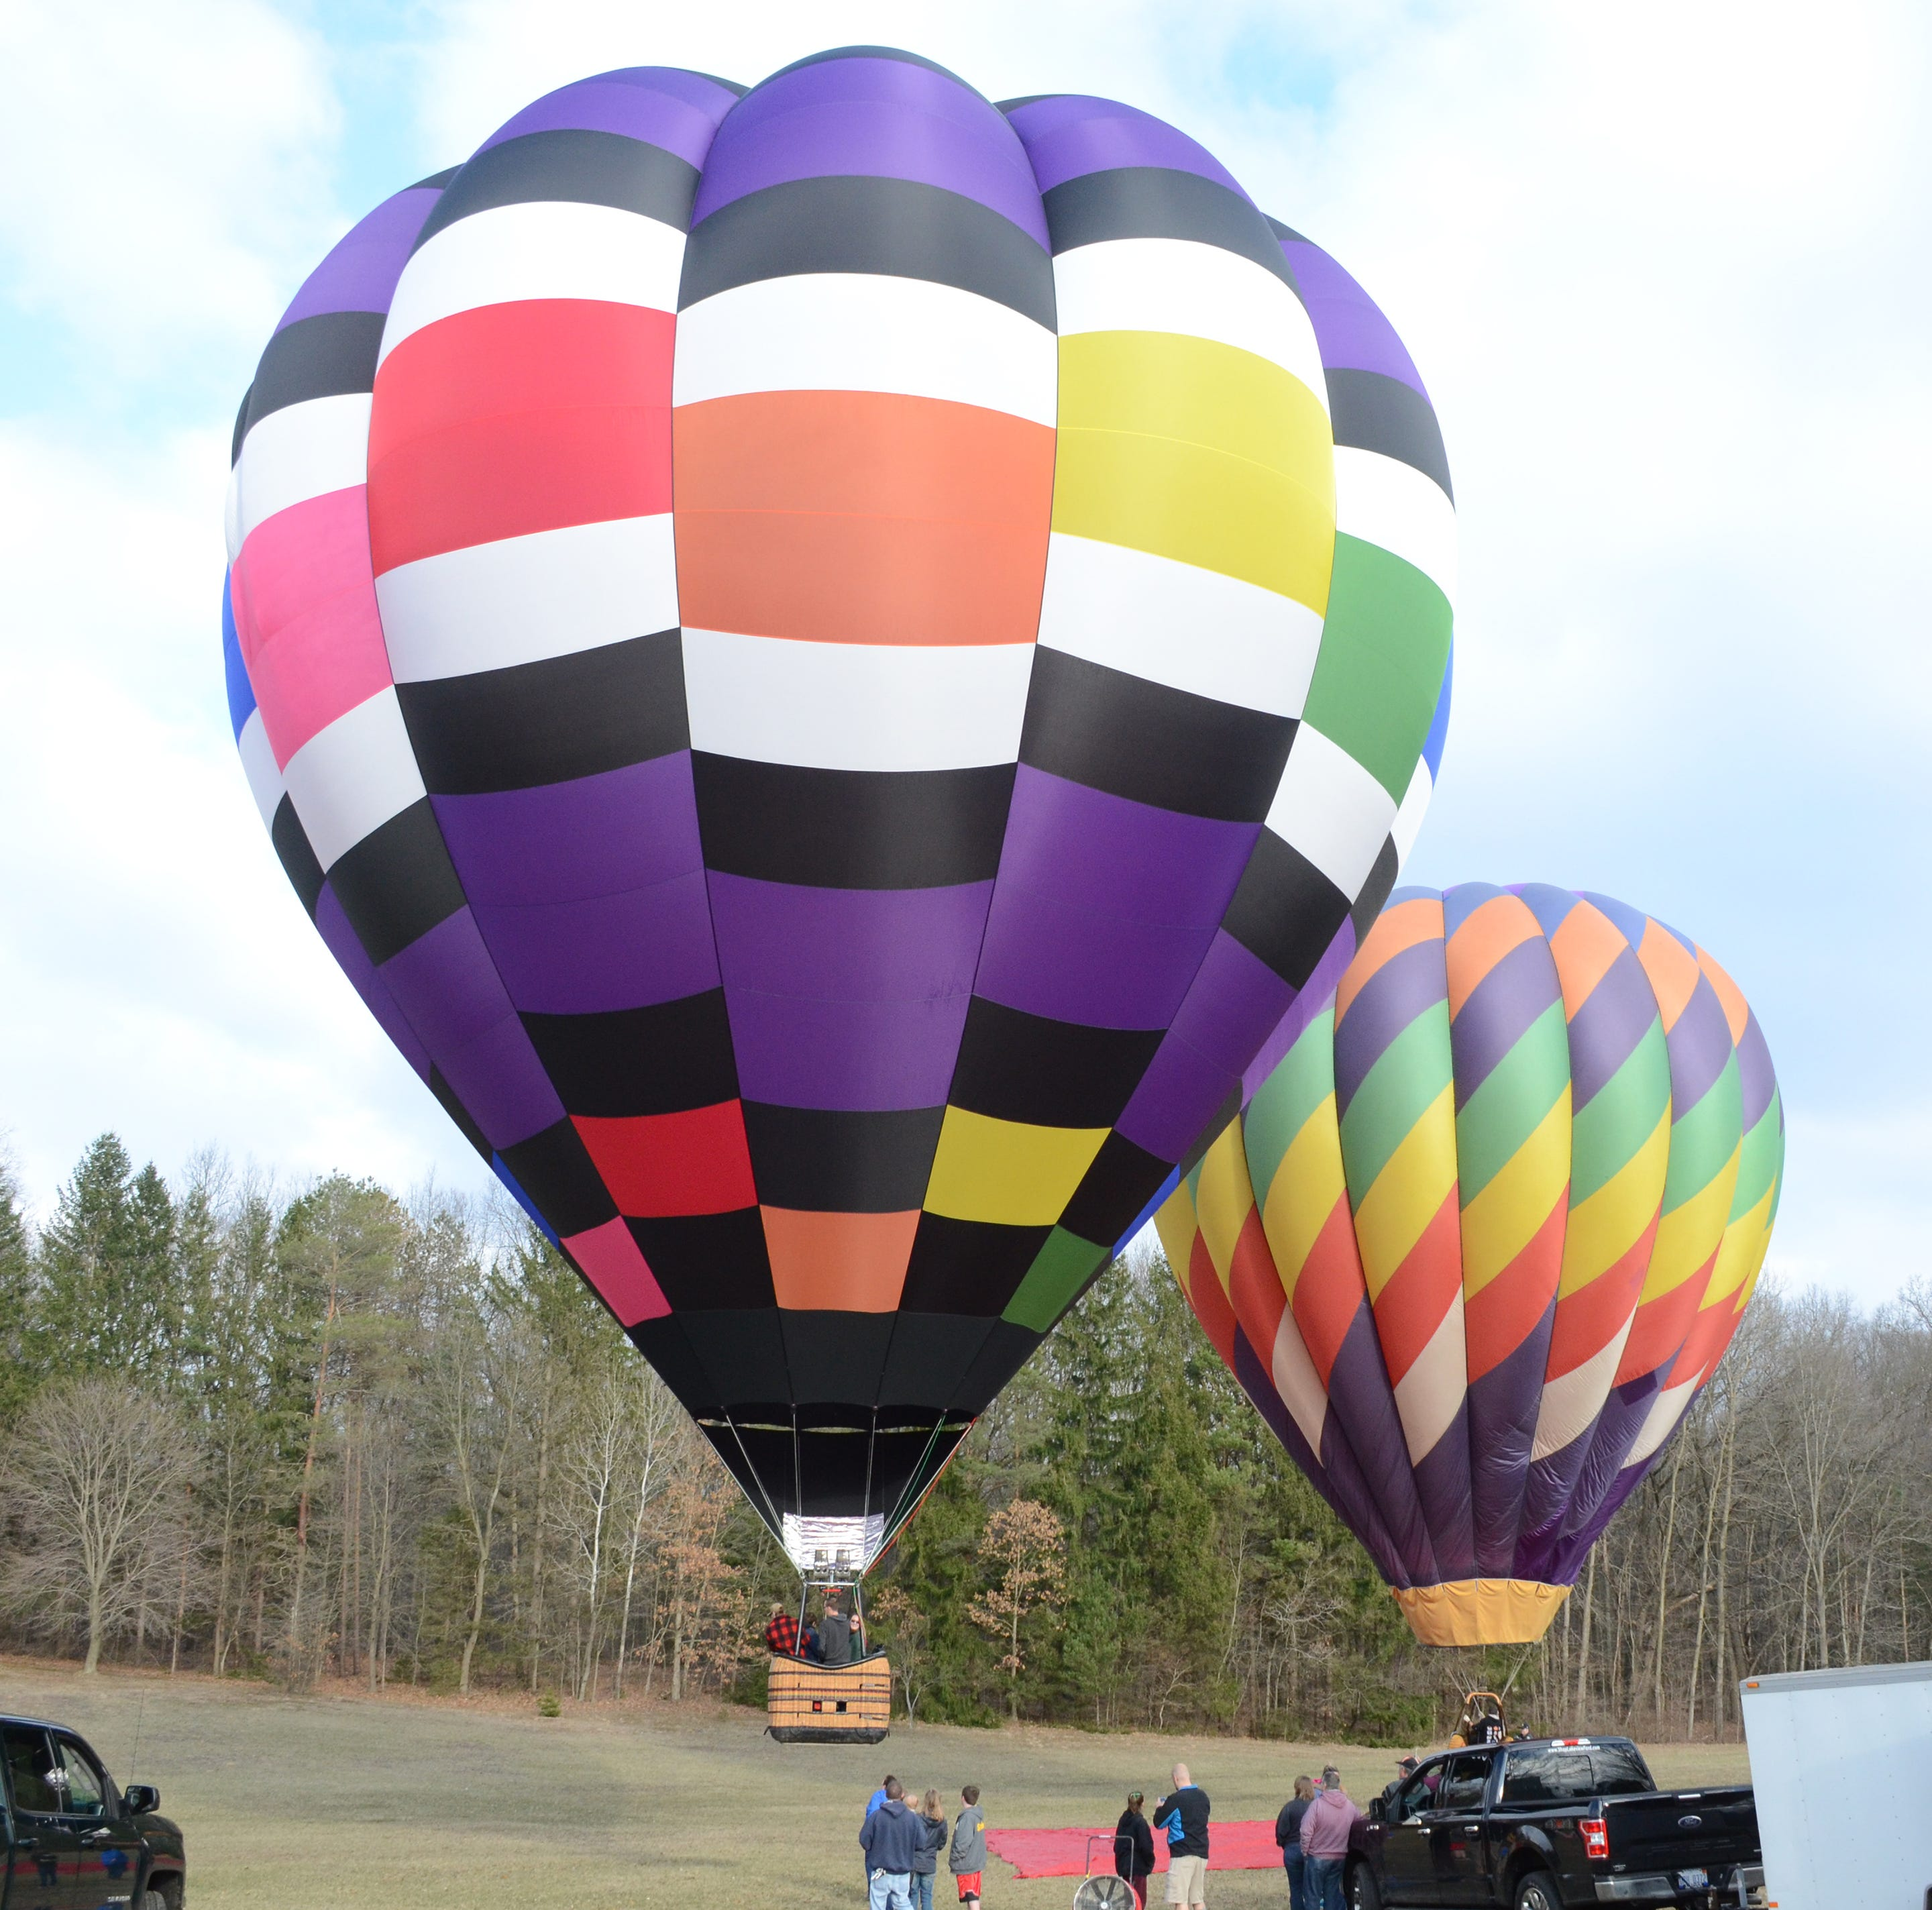 Smell of propane, balloons mean spring is here in Battle Creek